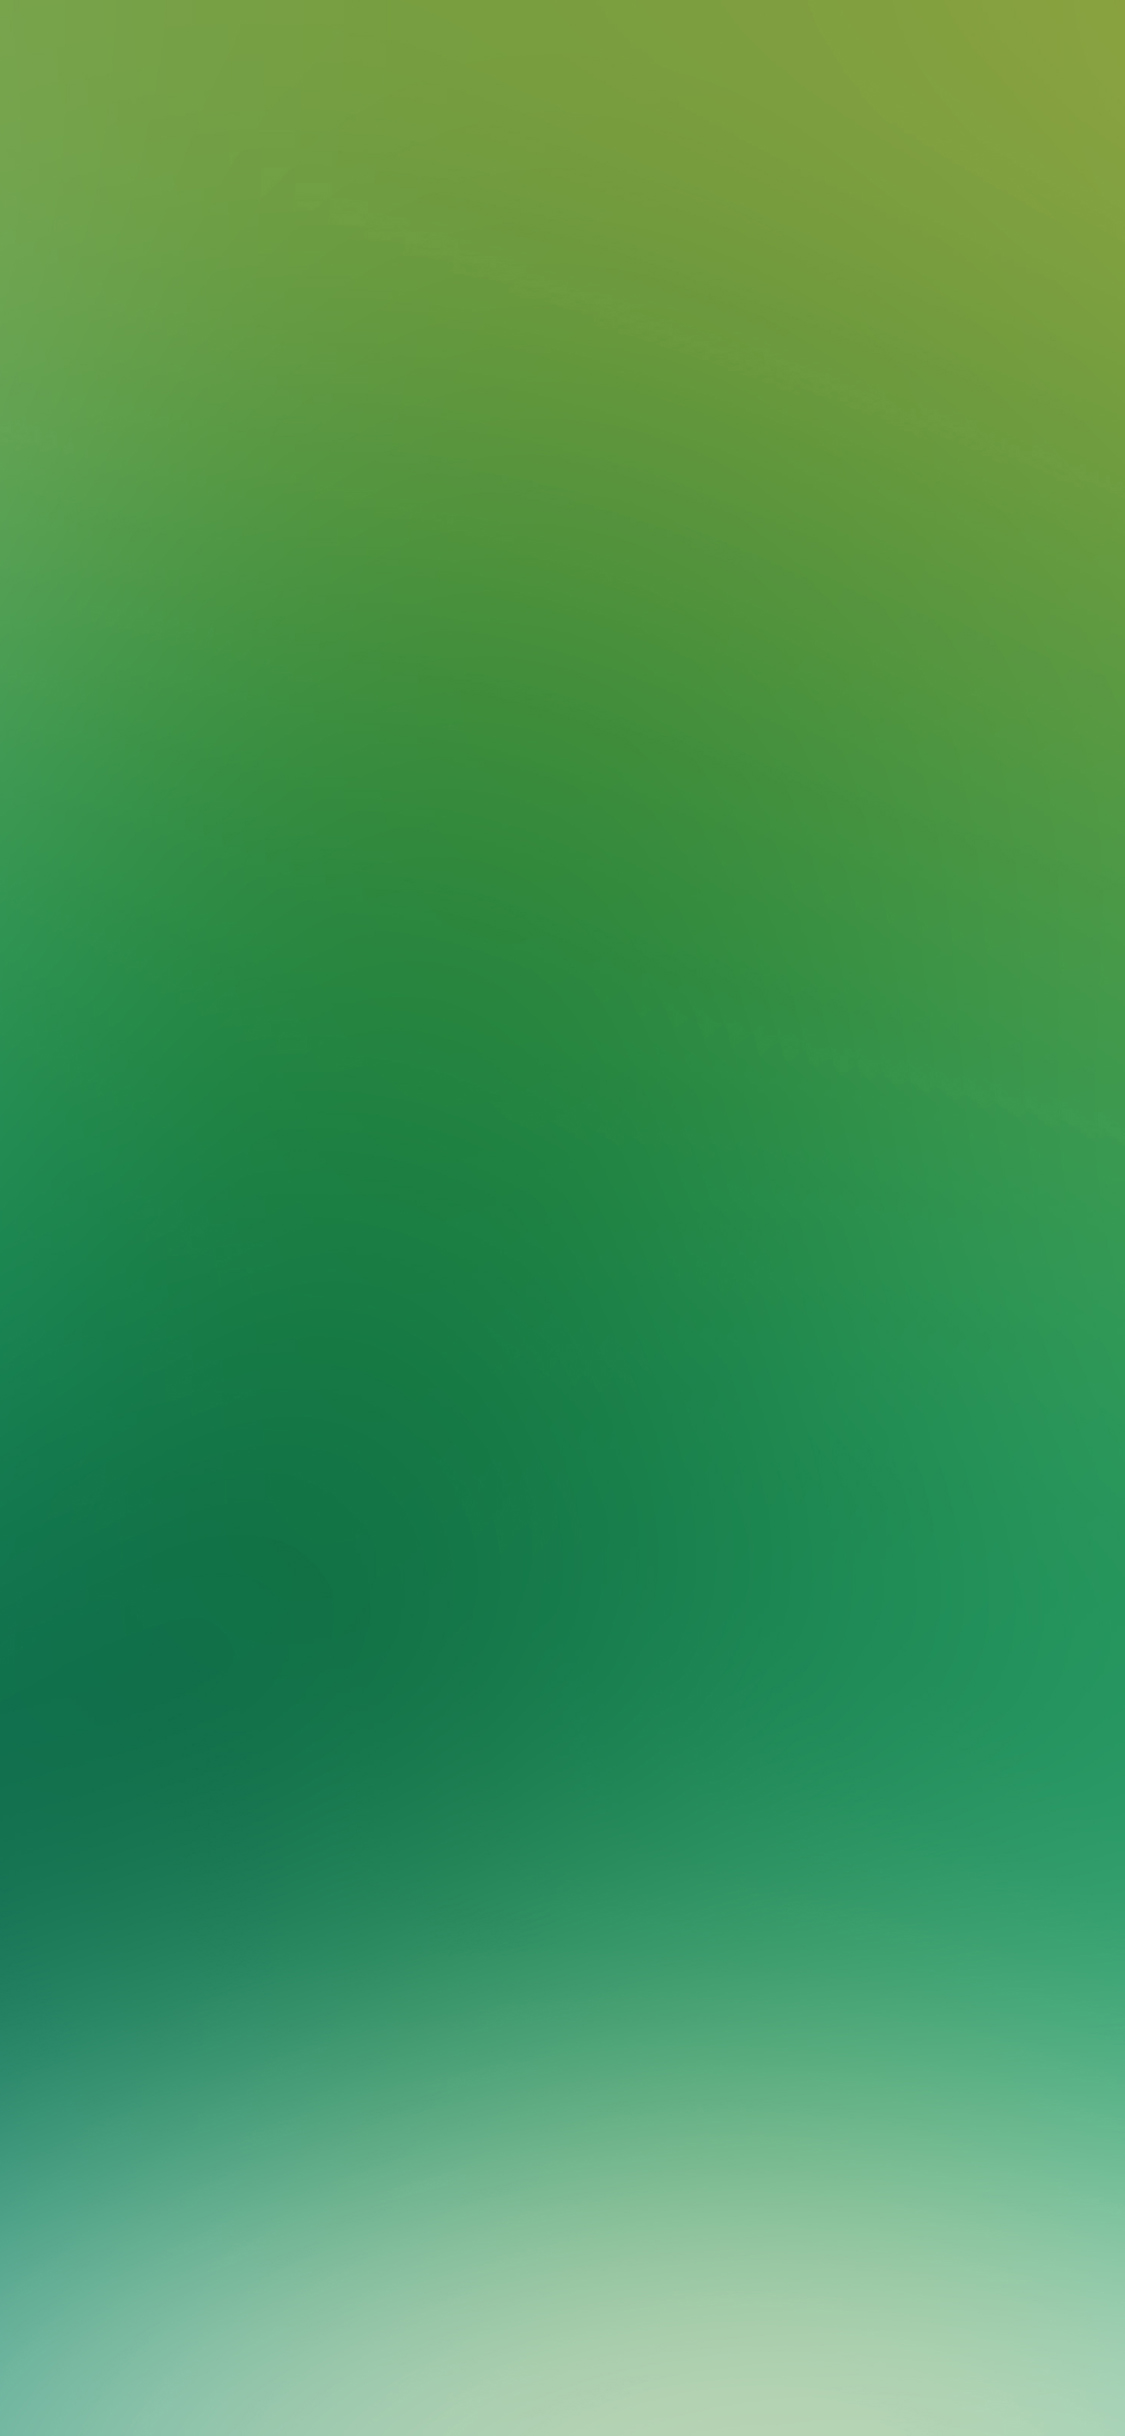 iPhoneXpapers.com-Apple-iPhone-wallpaper-sd54-lemonade-green-gradation-blur